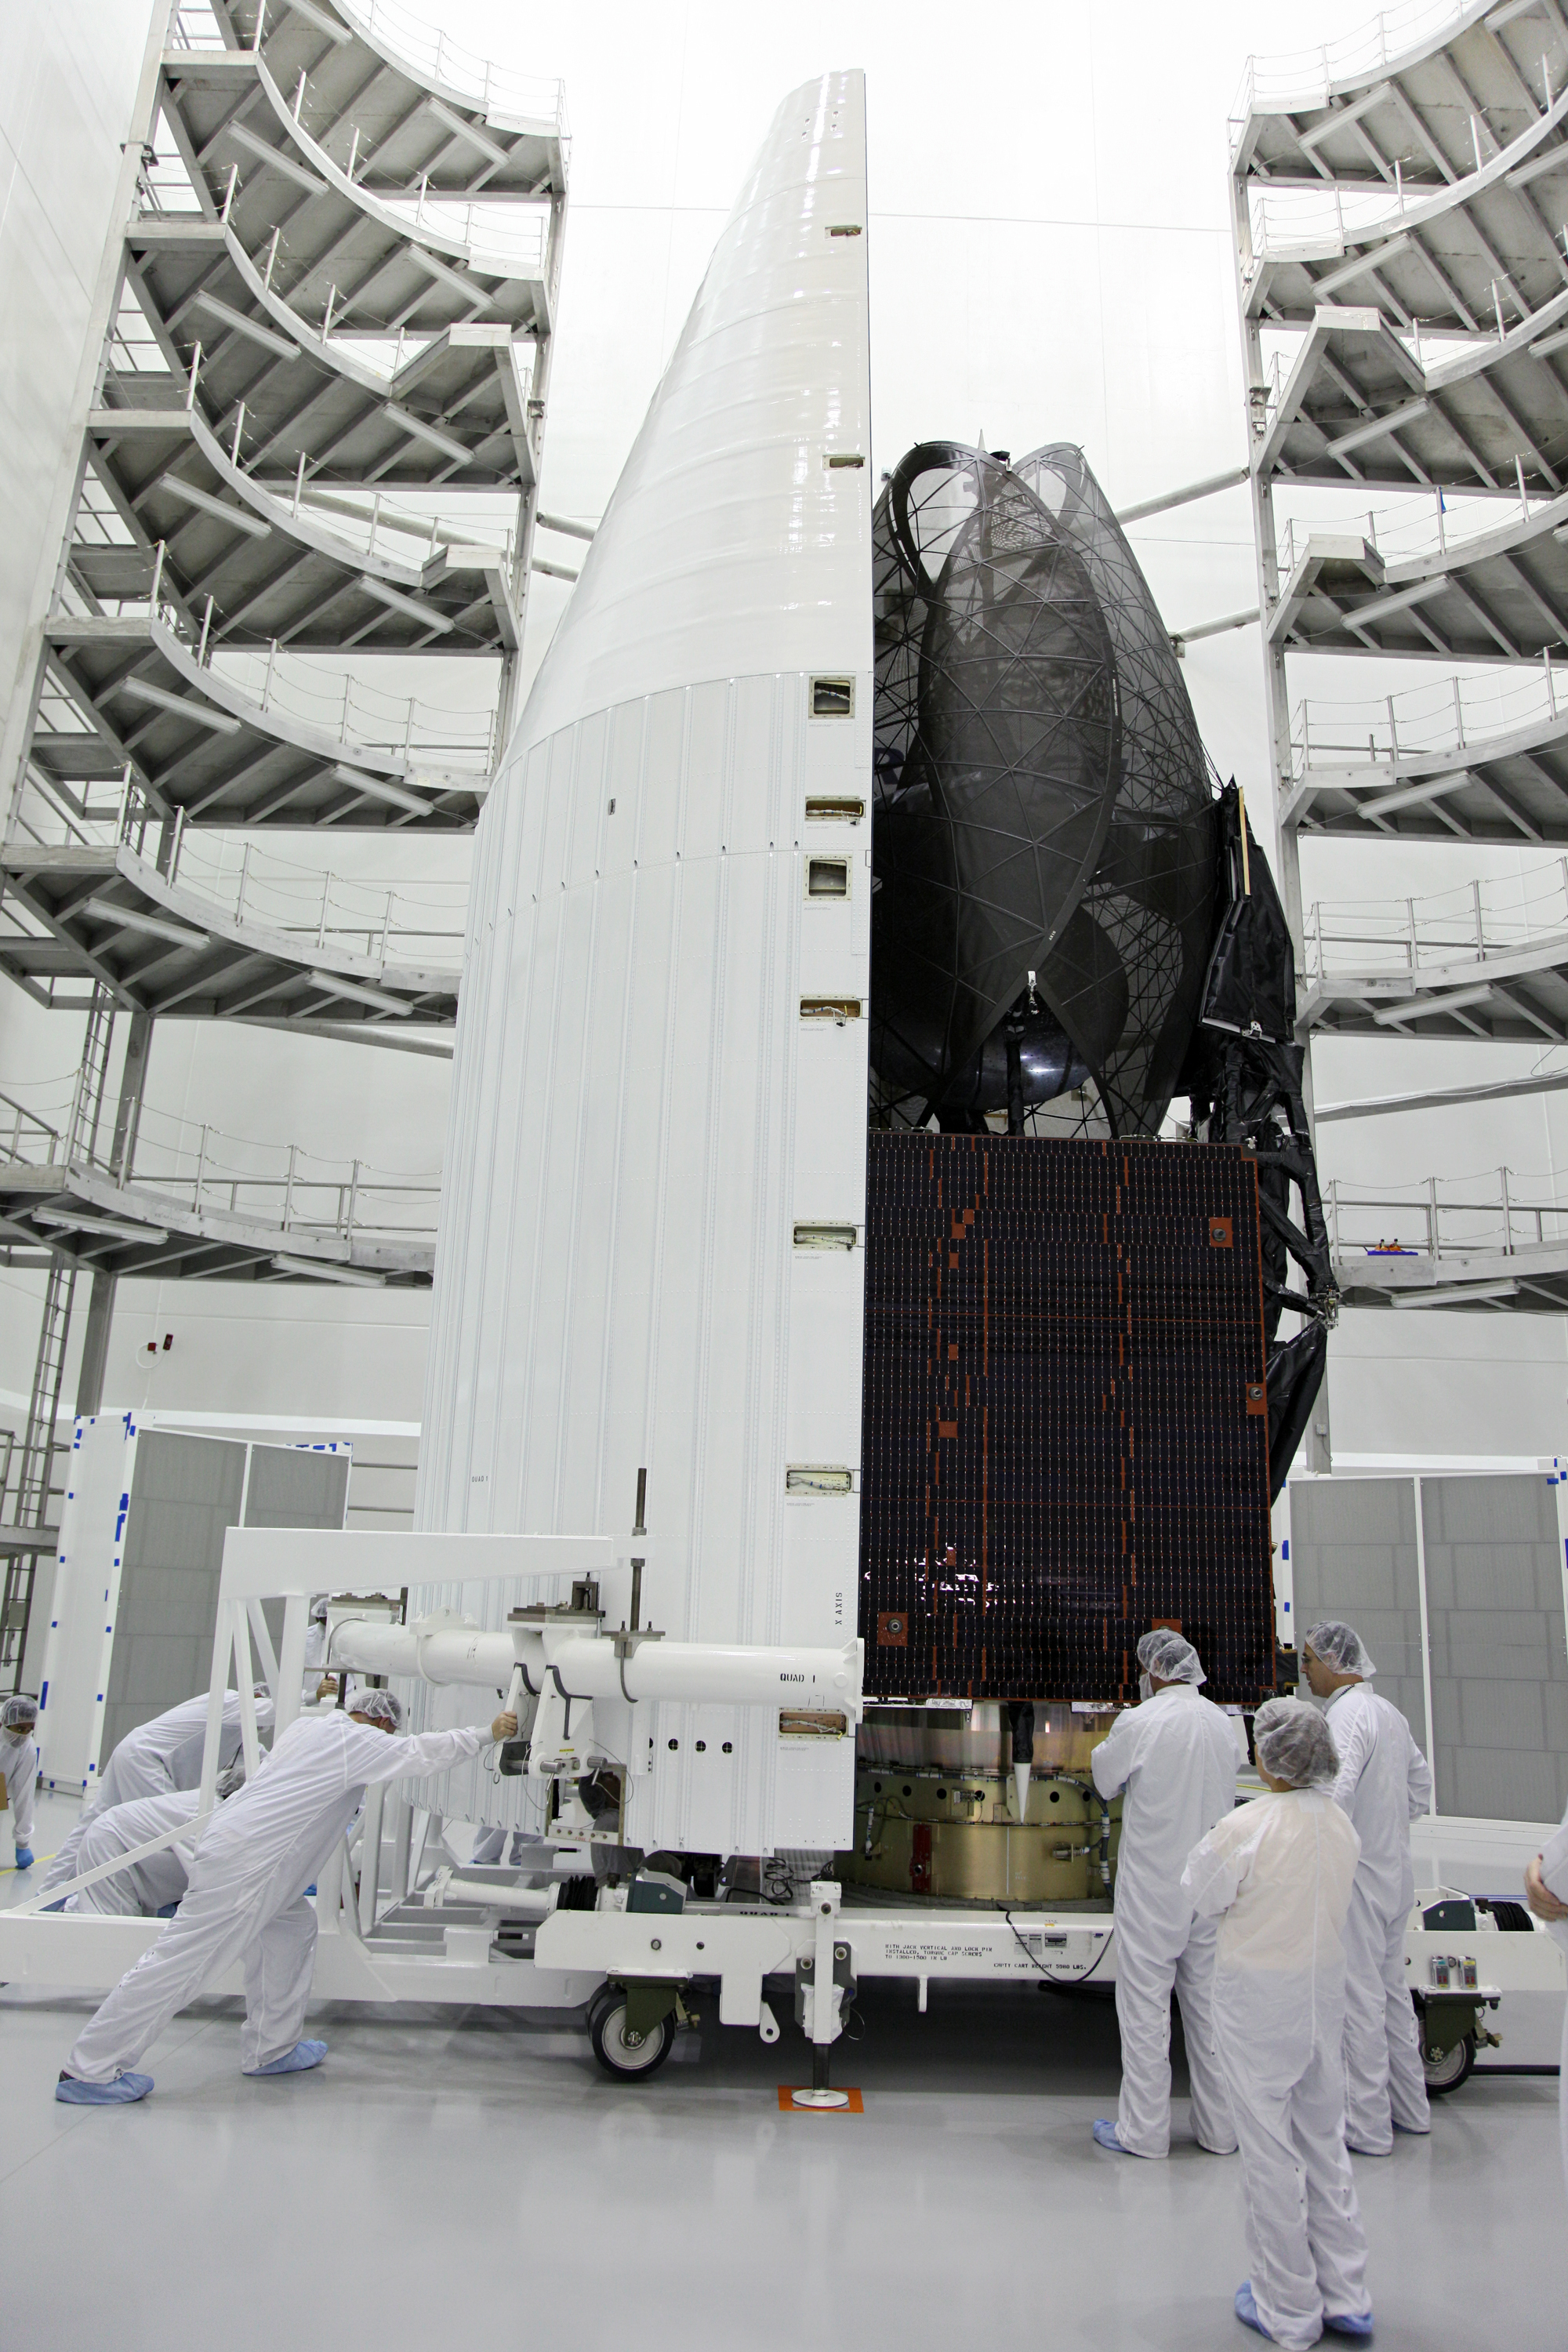 Technicians Move Payload of TDRS-K Spacecraft